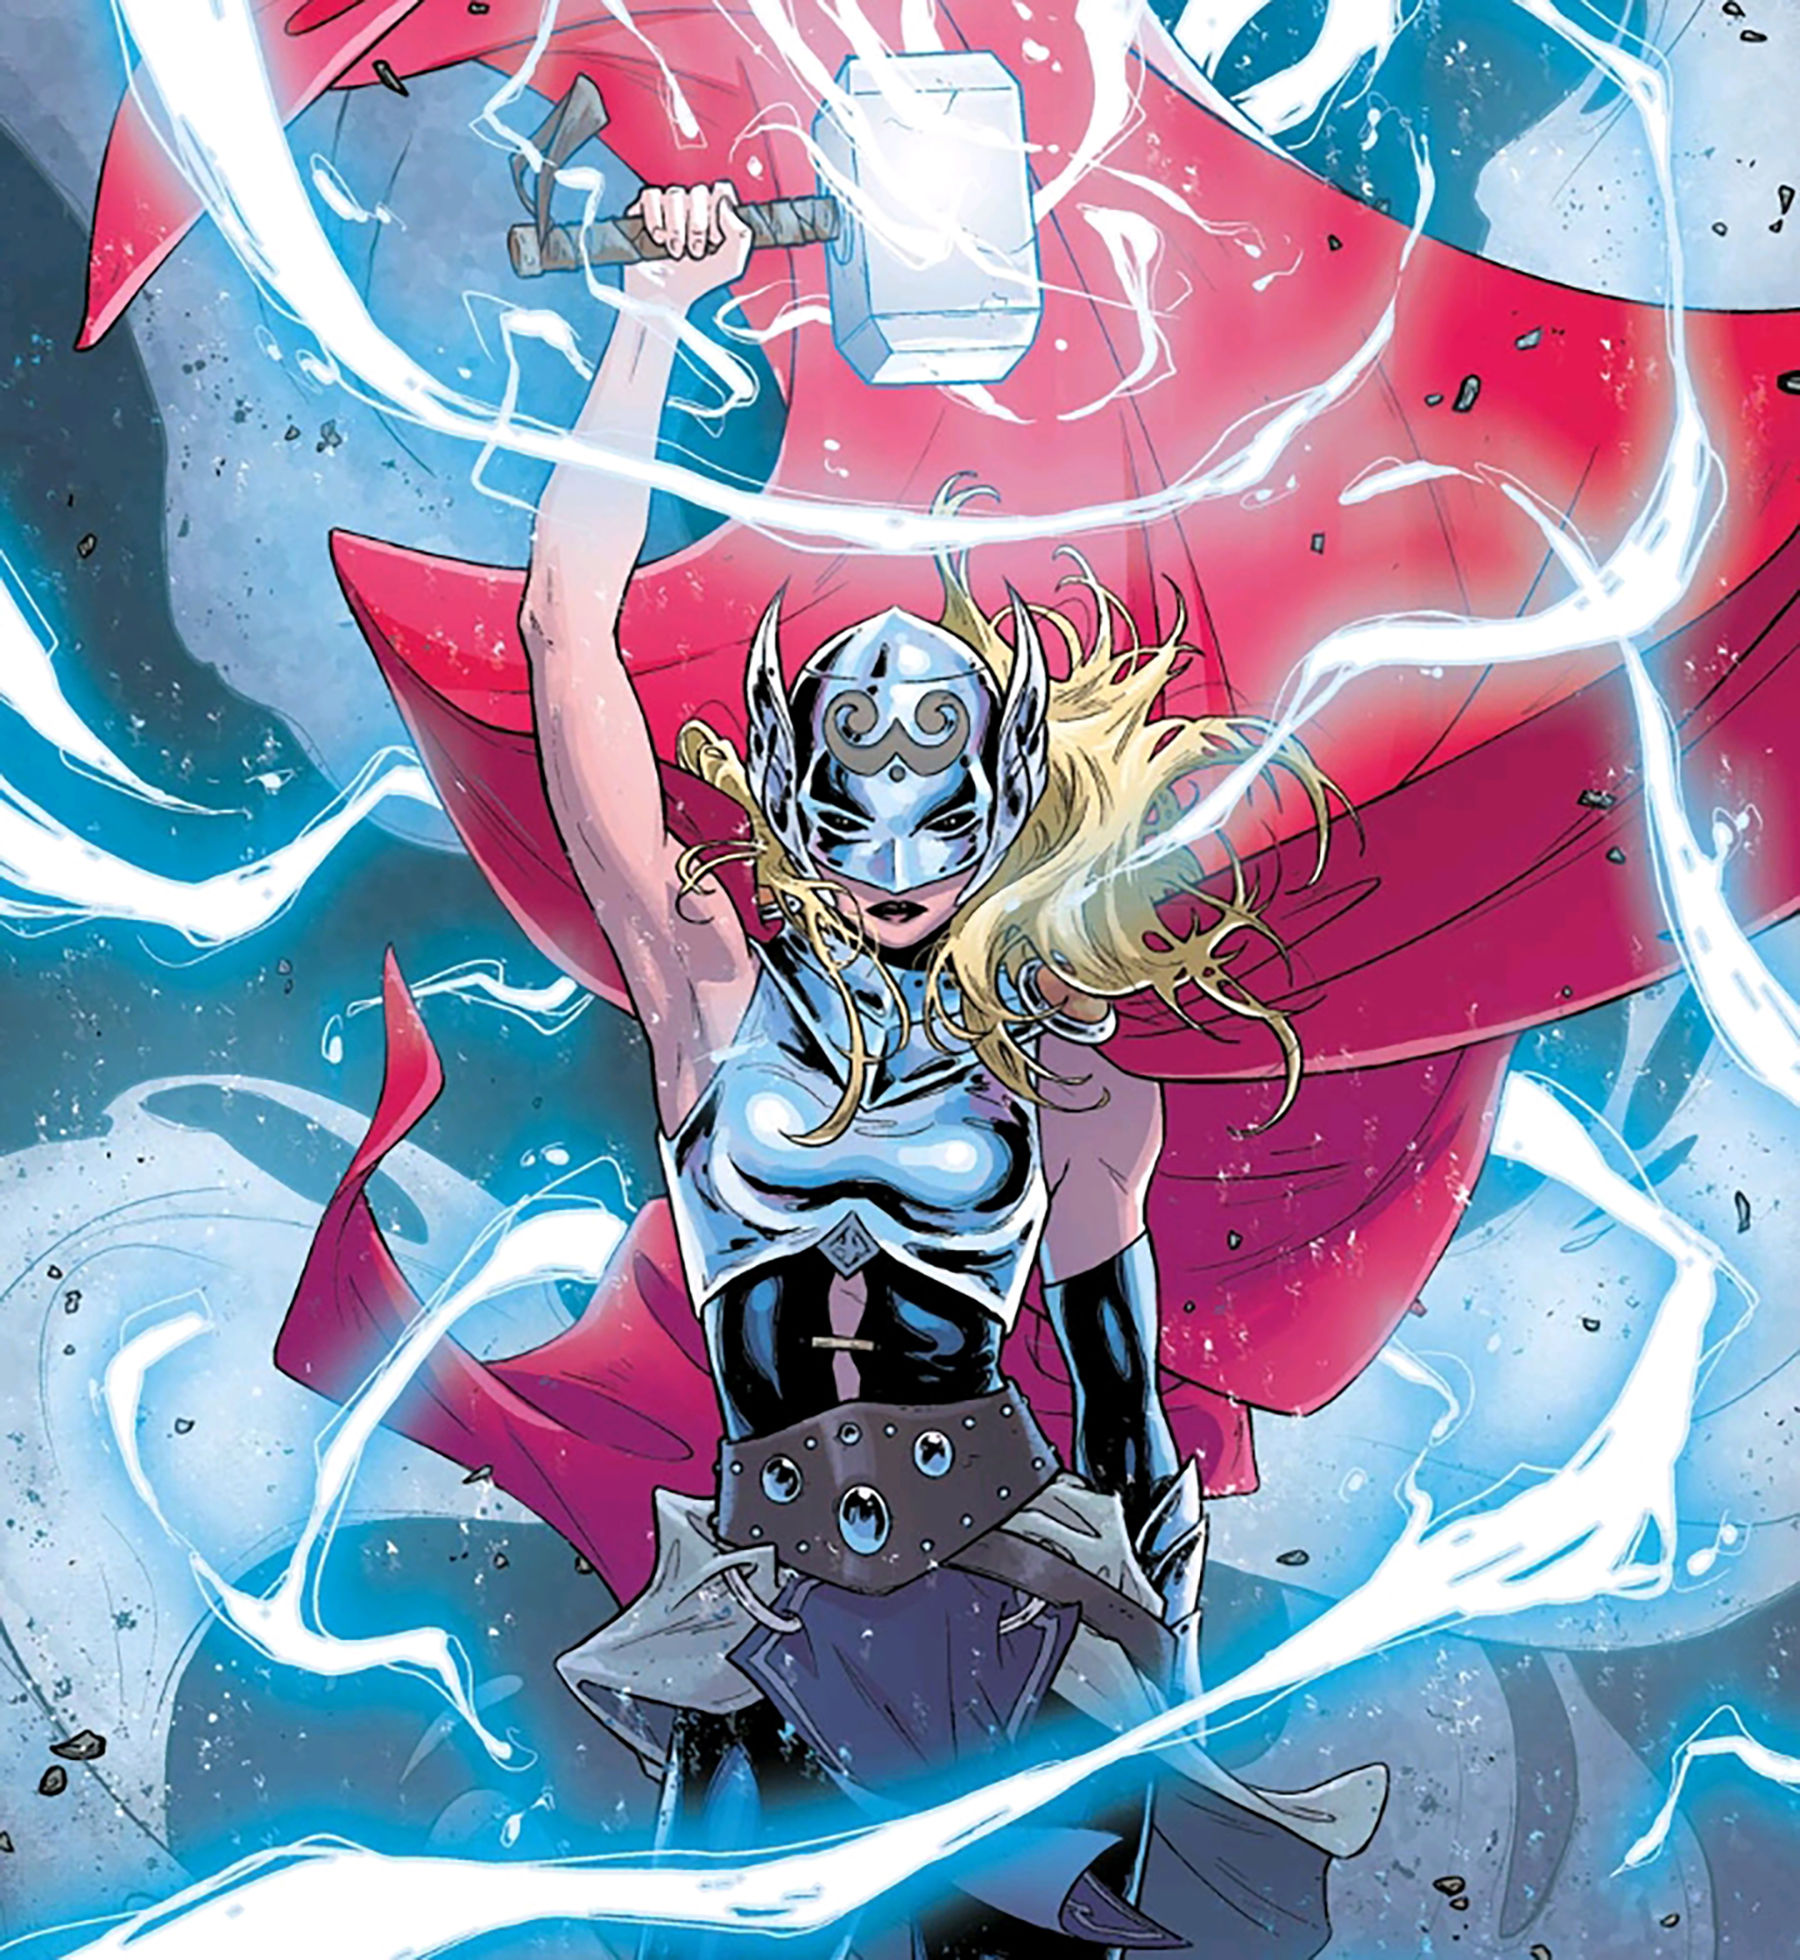 How Jane Foster wound up as female Thor in the comics